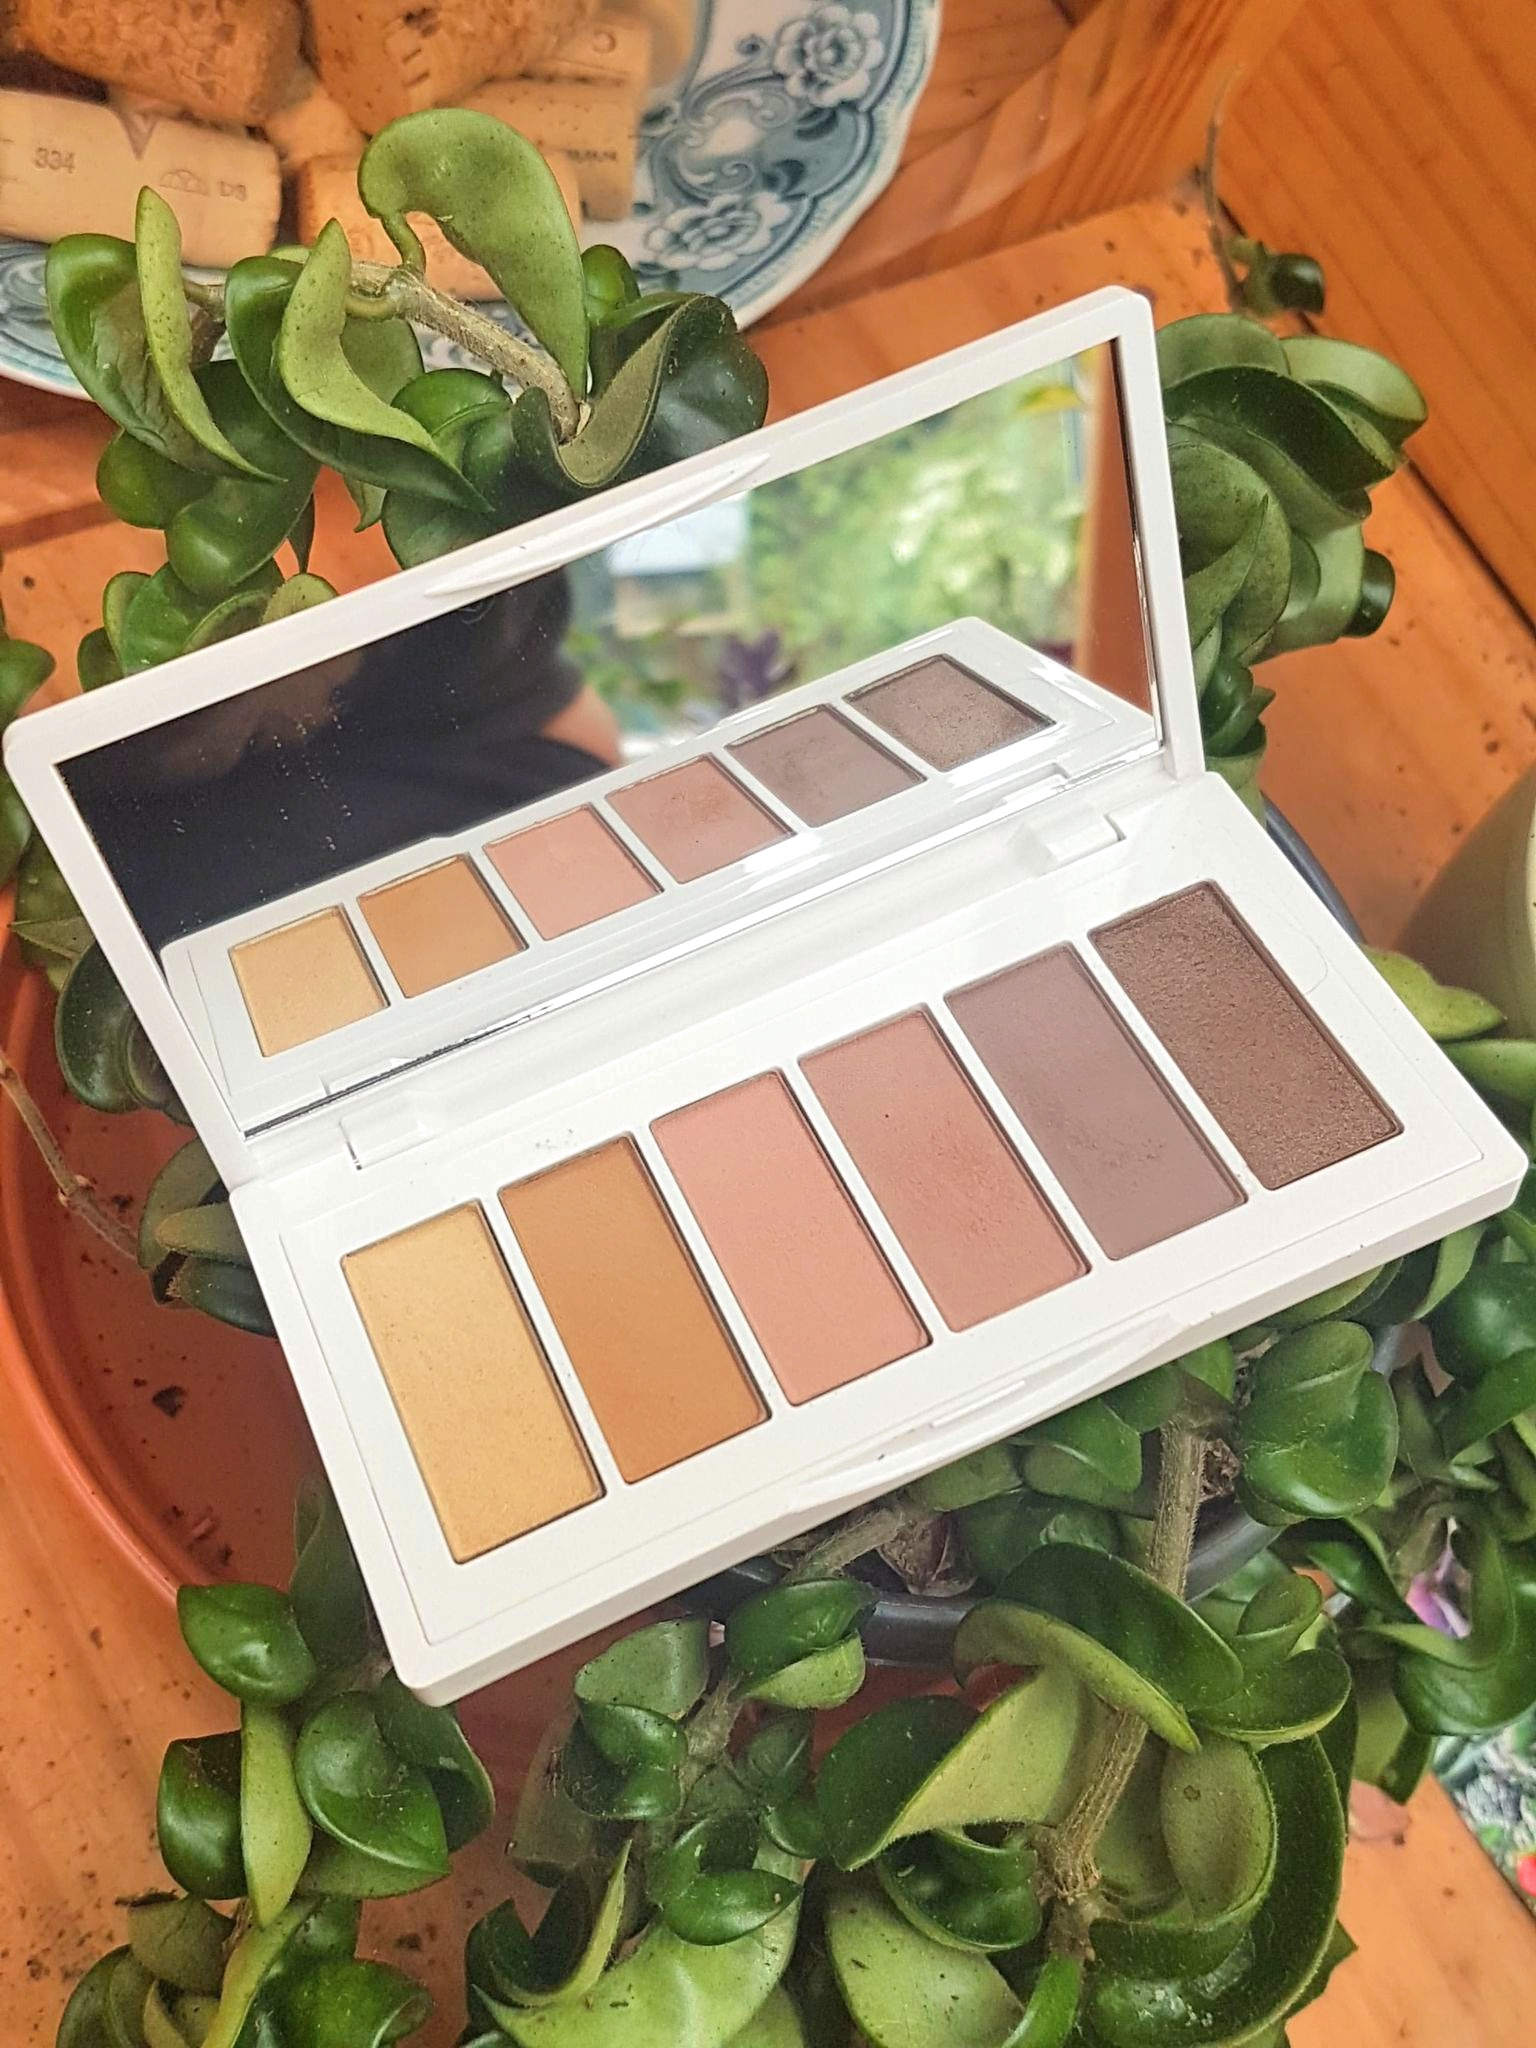 Ere Perez Chamomile Eyeshadow Palette in shade Lovely open on top of a green trailing hoya plant